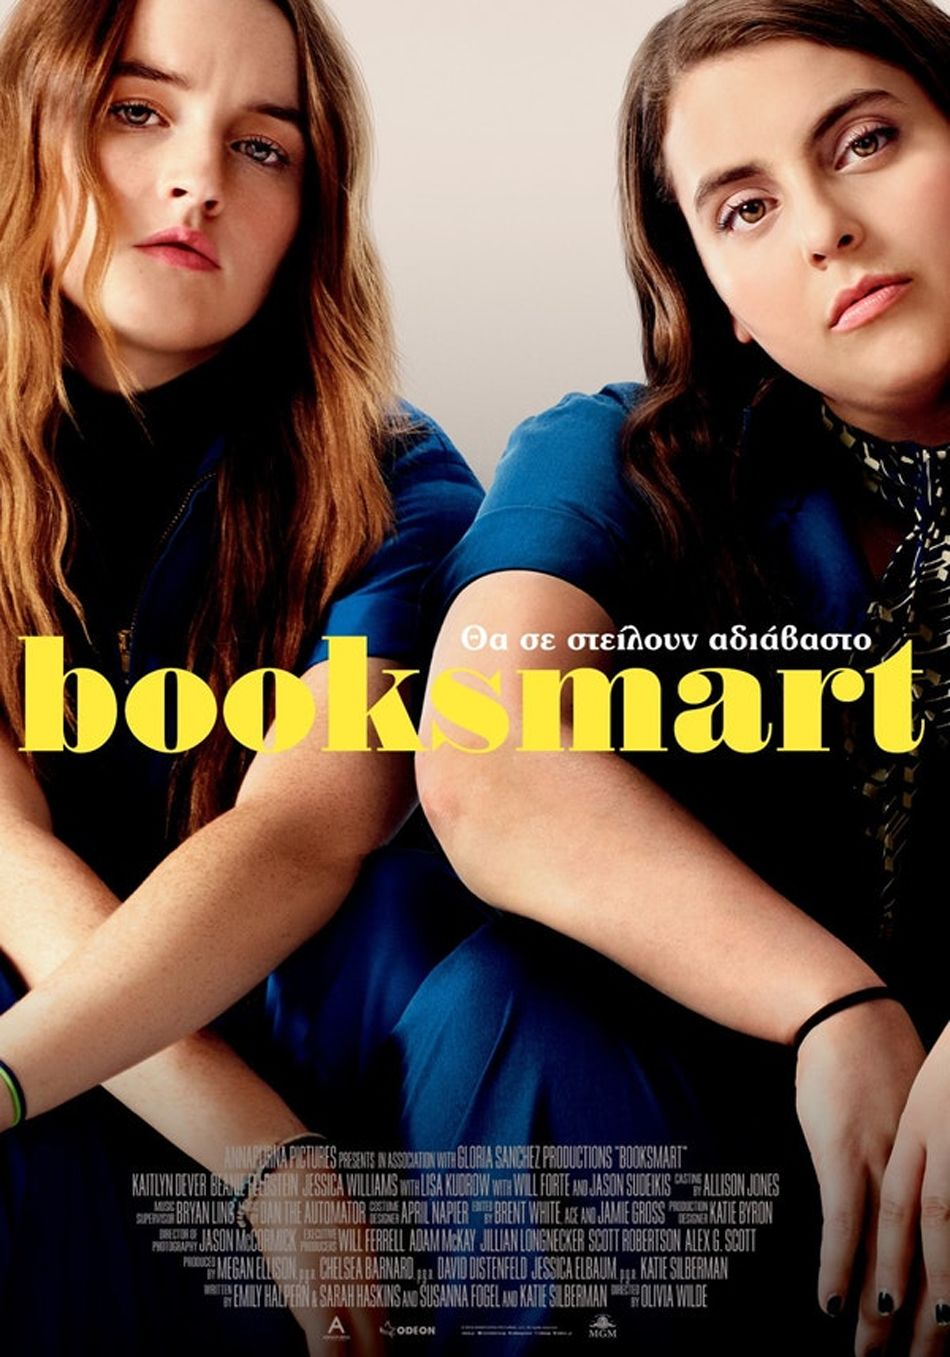 Booksmart - Trailer / Τρέιλερ Poster